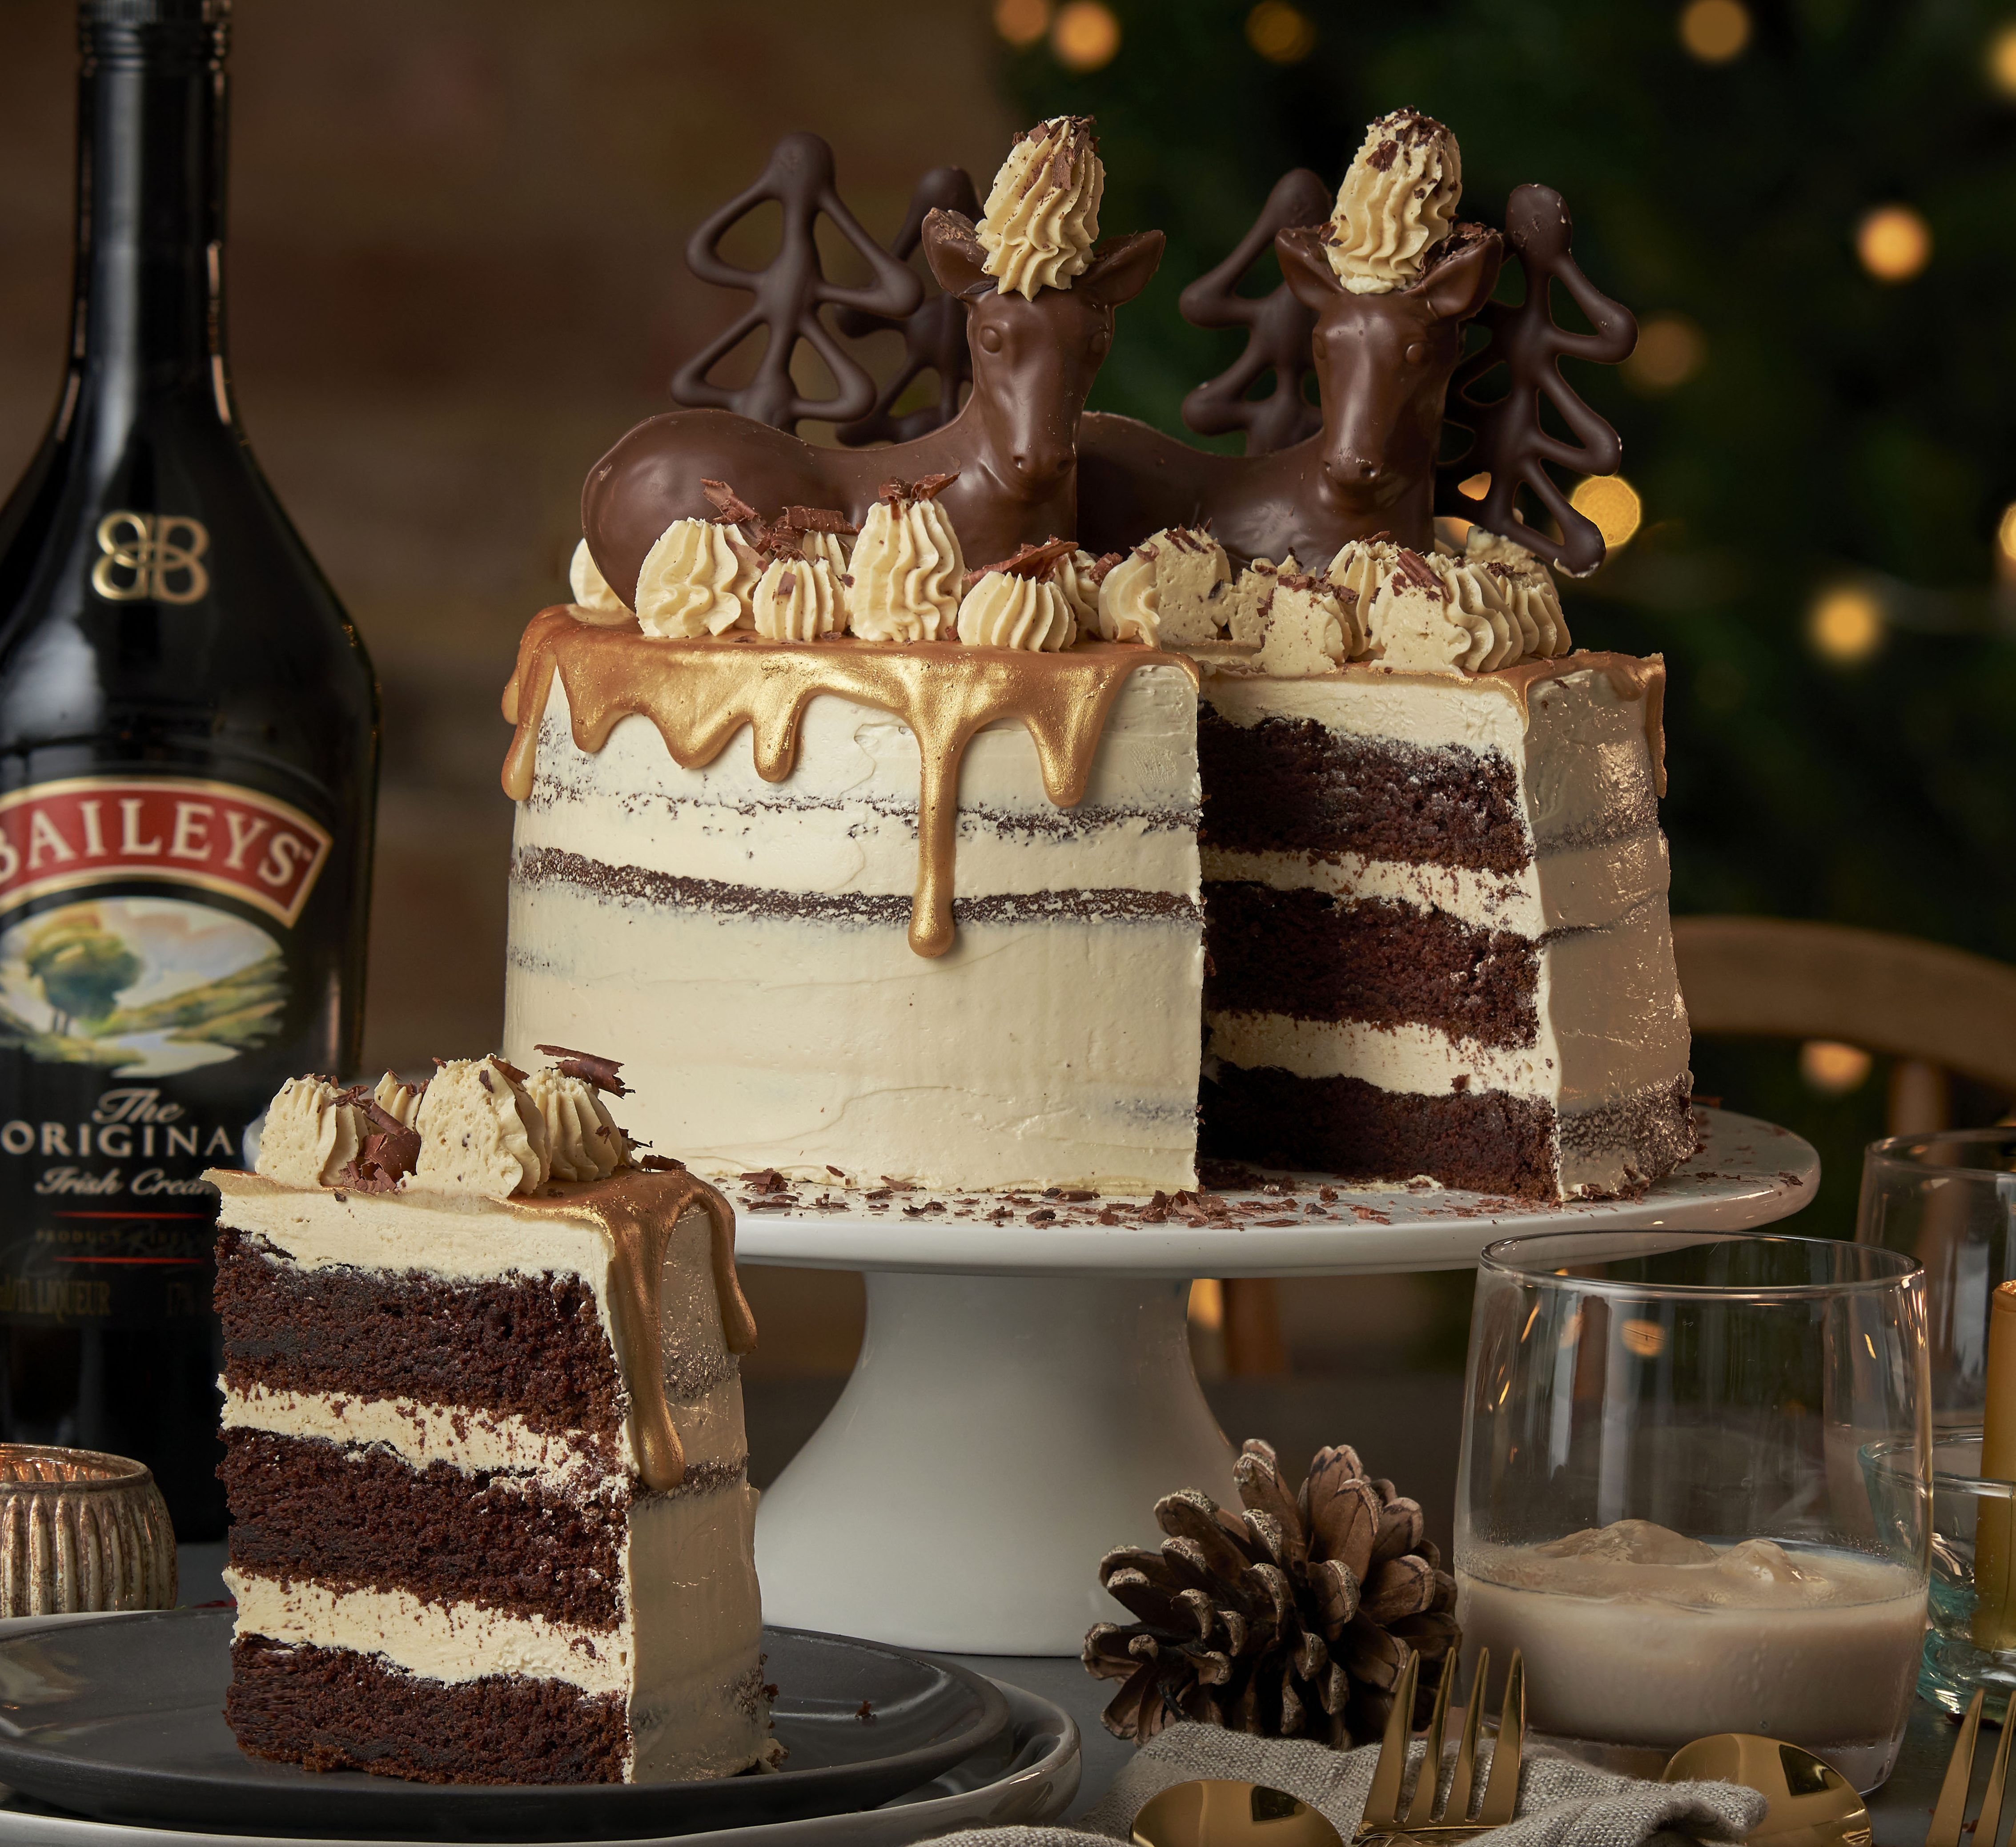 How to make a show-stoppingly festive Bailey's chocolate cake